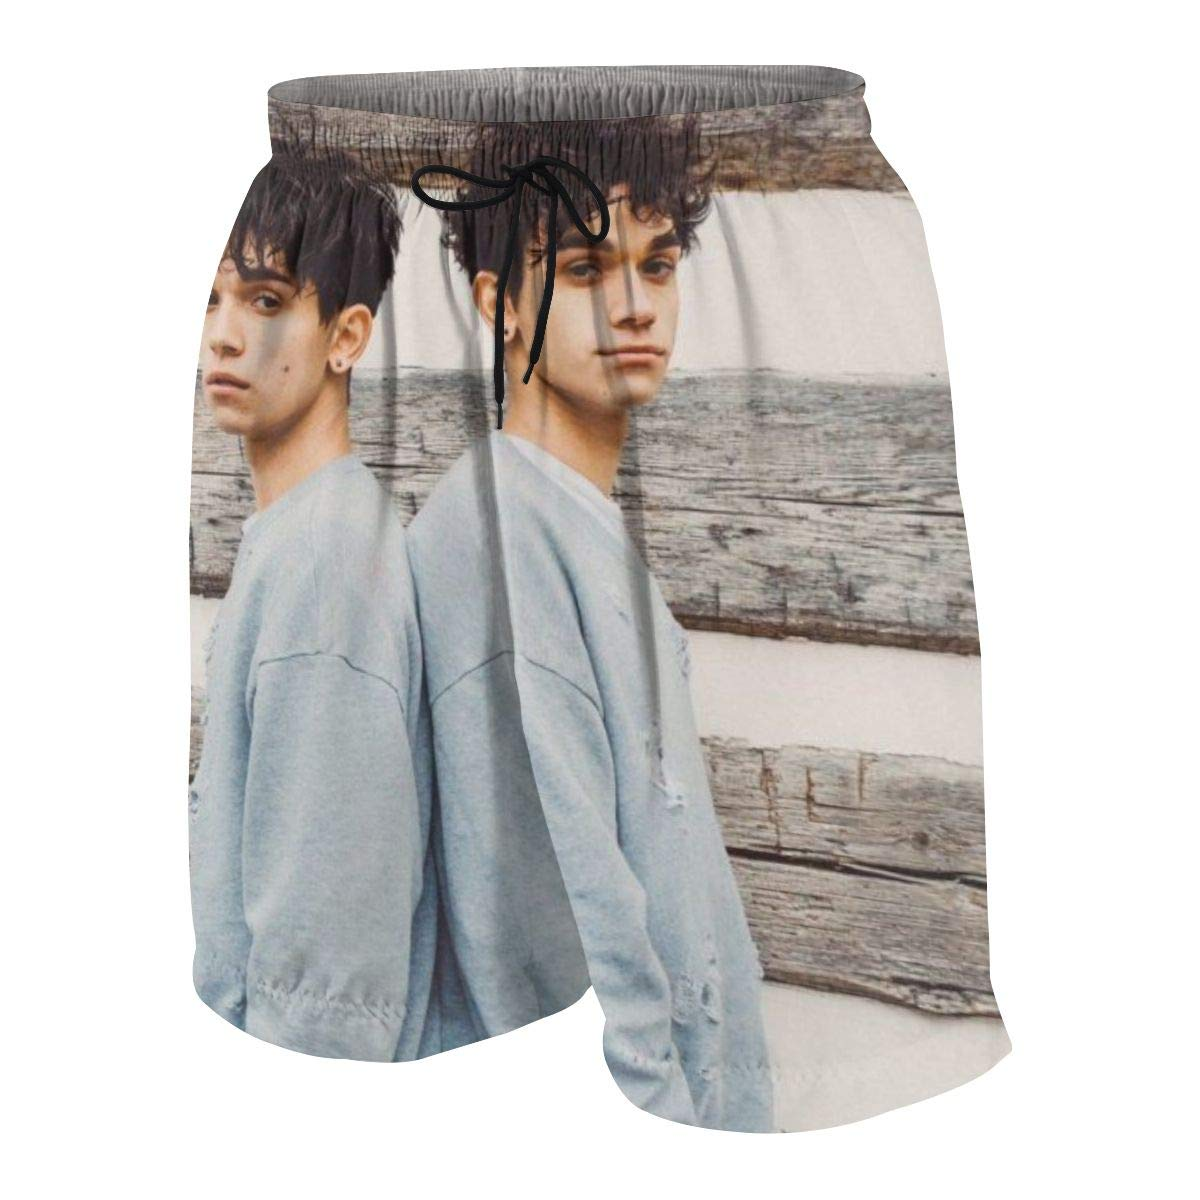 KSFKE Lucas and Marcus Teens Beach Board Shorts Quick Dry Bathing Suits Swim Trunks Shorts